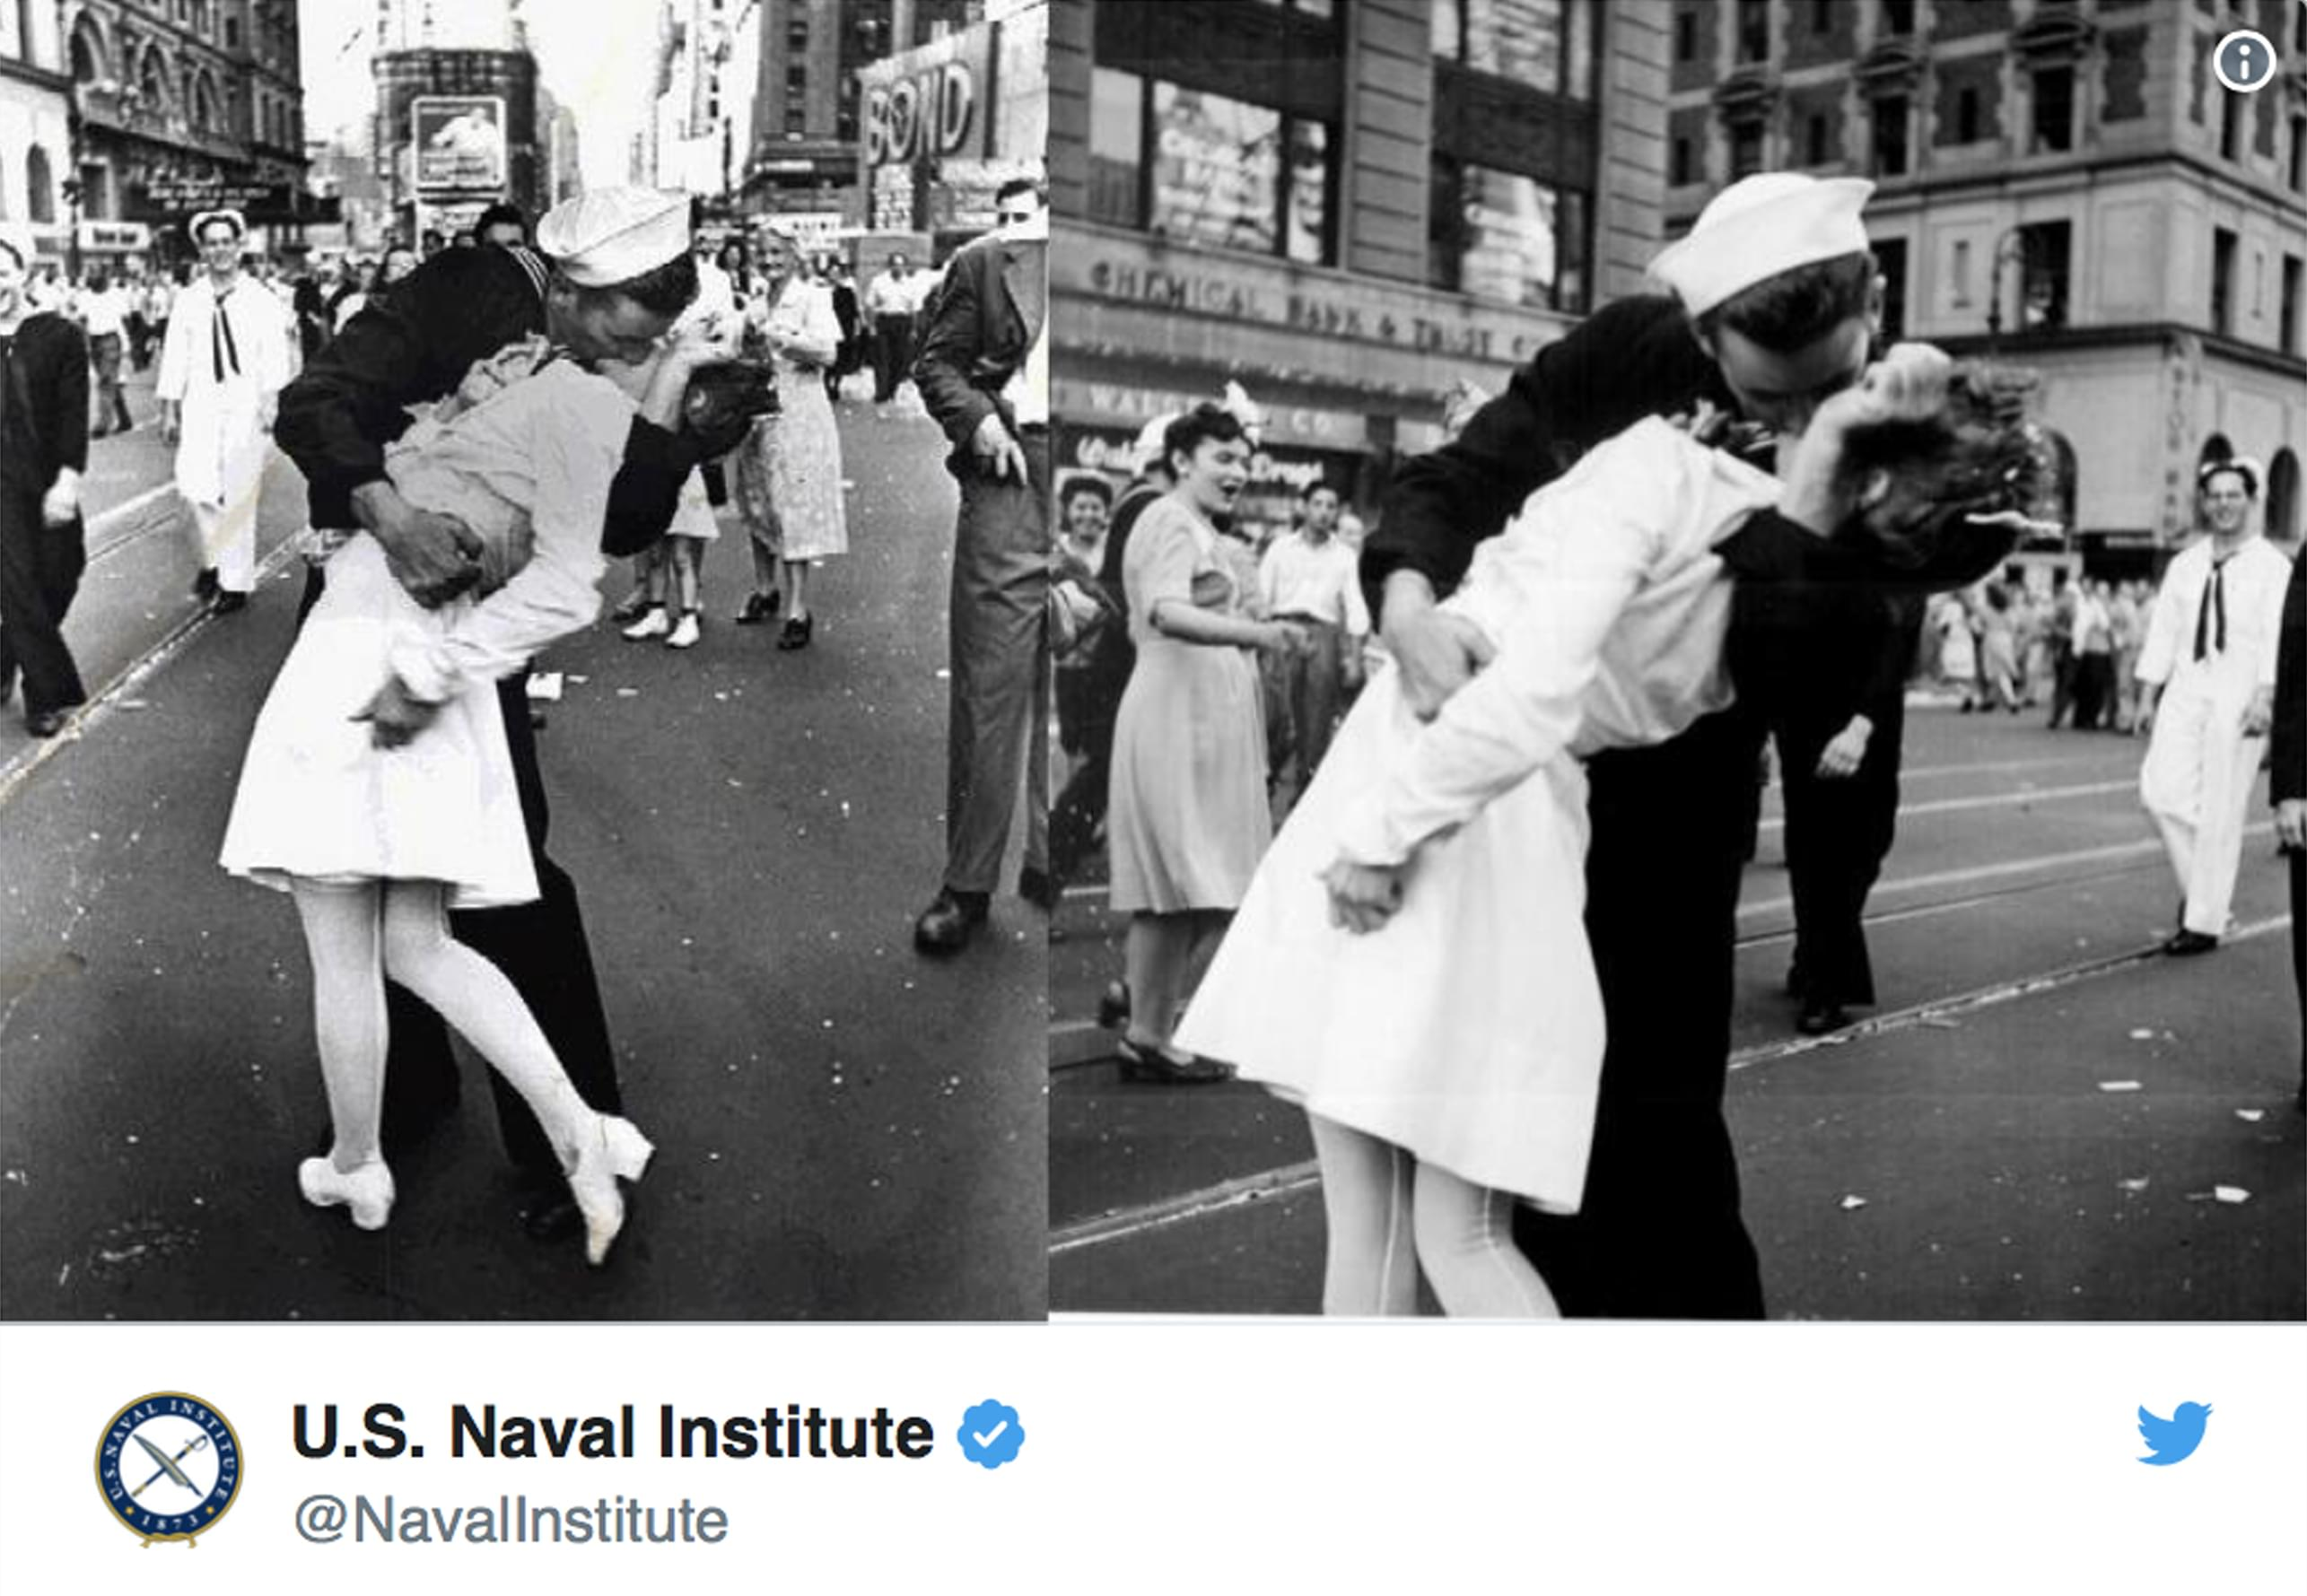 R.I.P. George Mendonsa, the sailor from that famous post WW2 photo